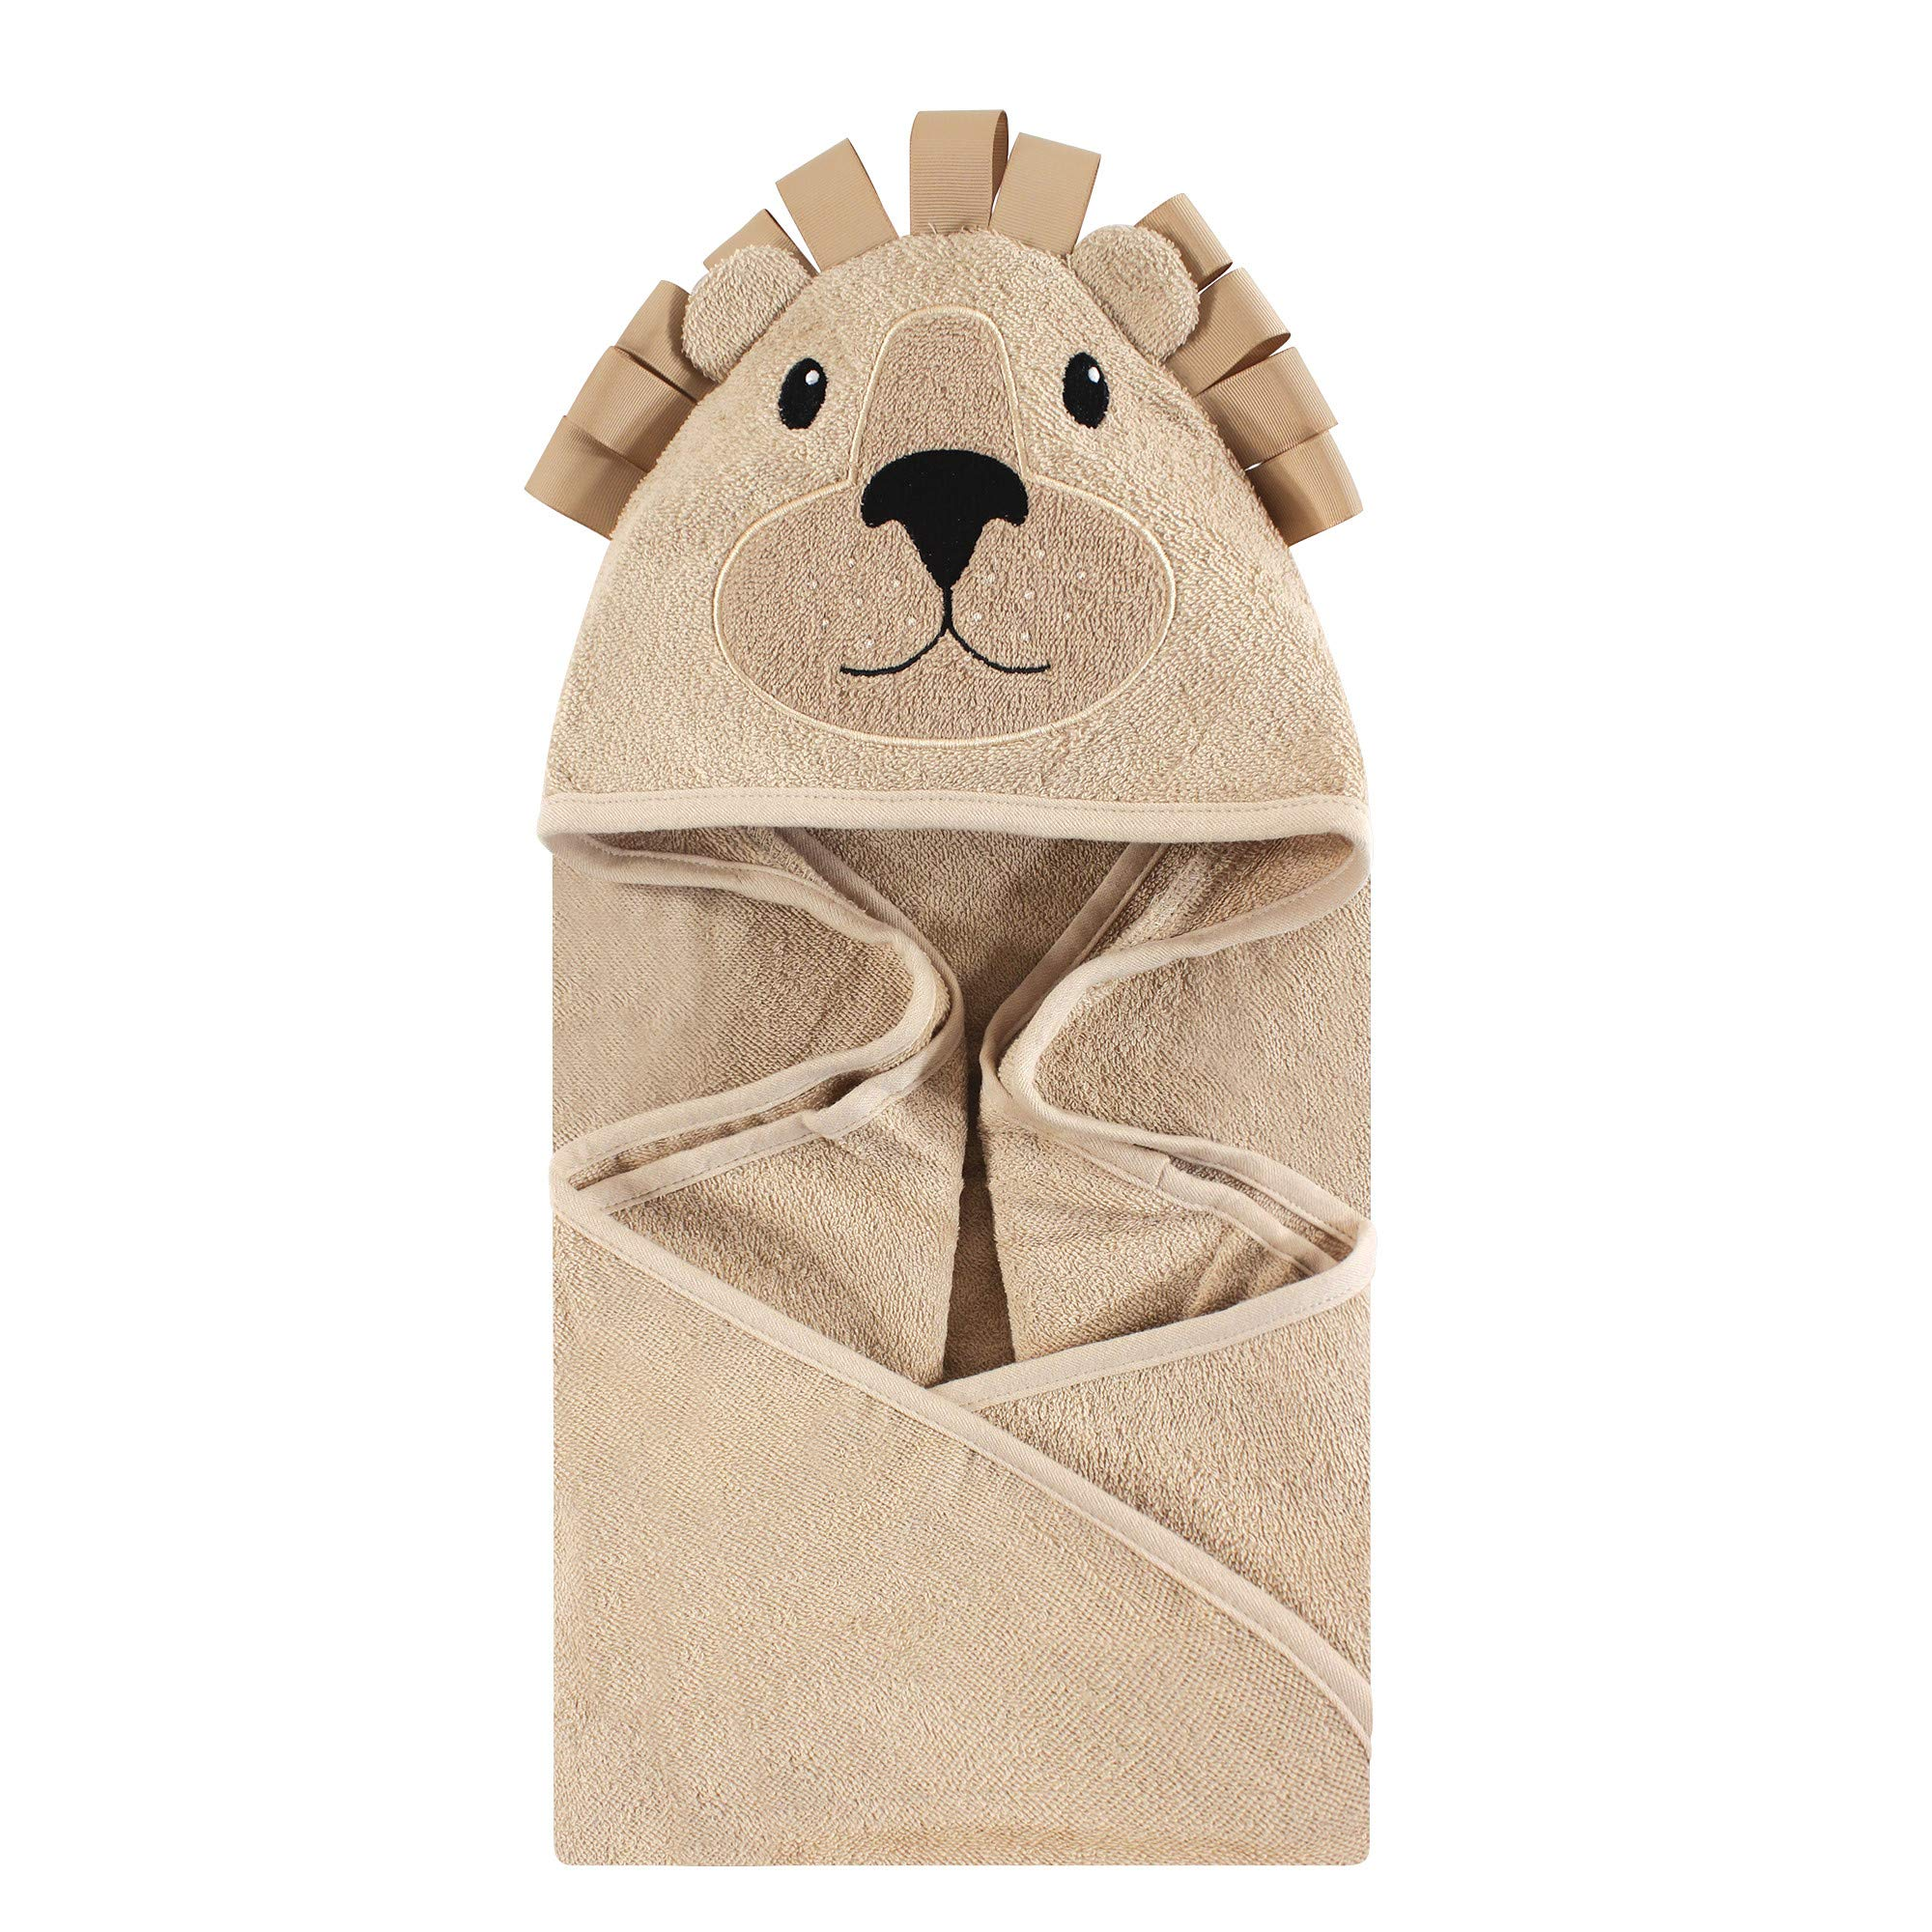 Hudson Baby Unisex Baby Animal Face Hooded Towel, Lion 1-Pack, One Size by Hudson Baby